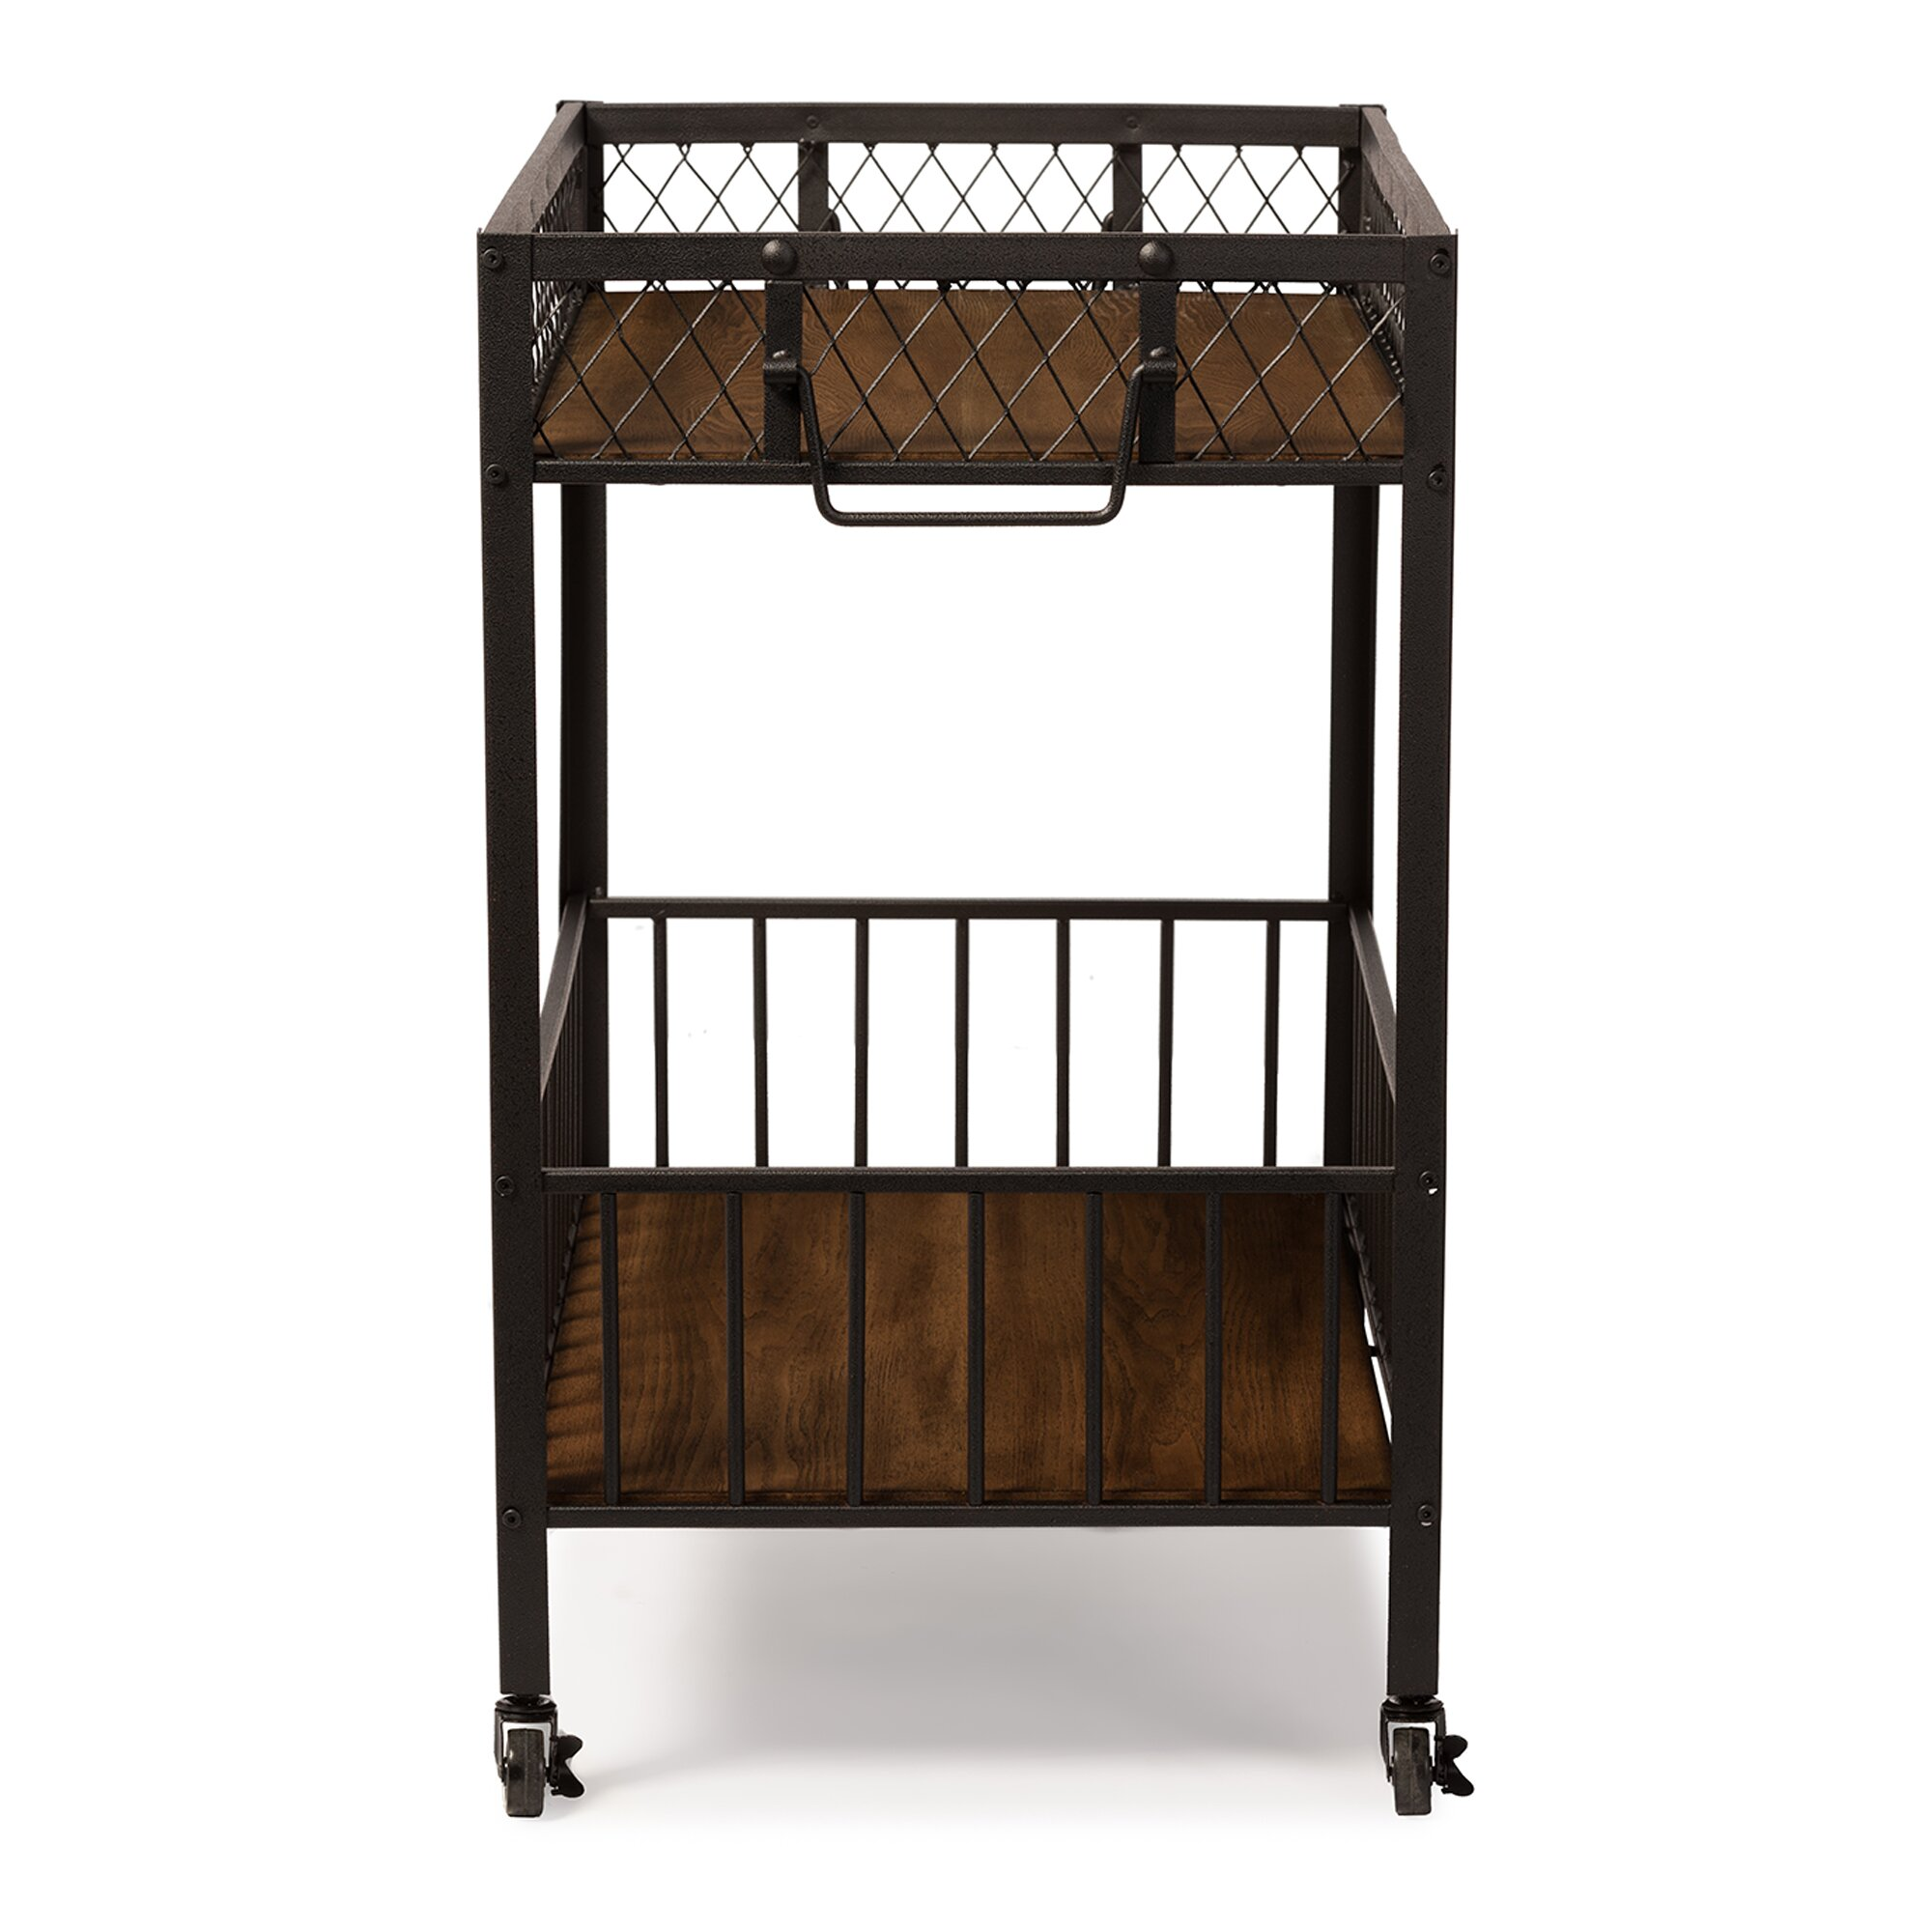 Wood And Metal Industrial Kitchen Cart: Wholesale Interiors Baxton Studio Serving Cart & Reviews